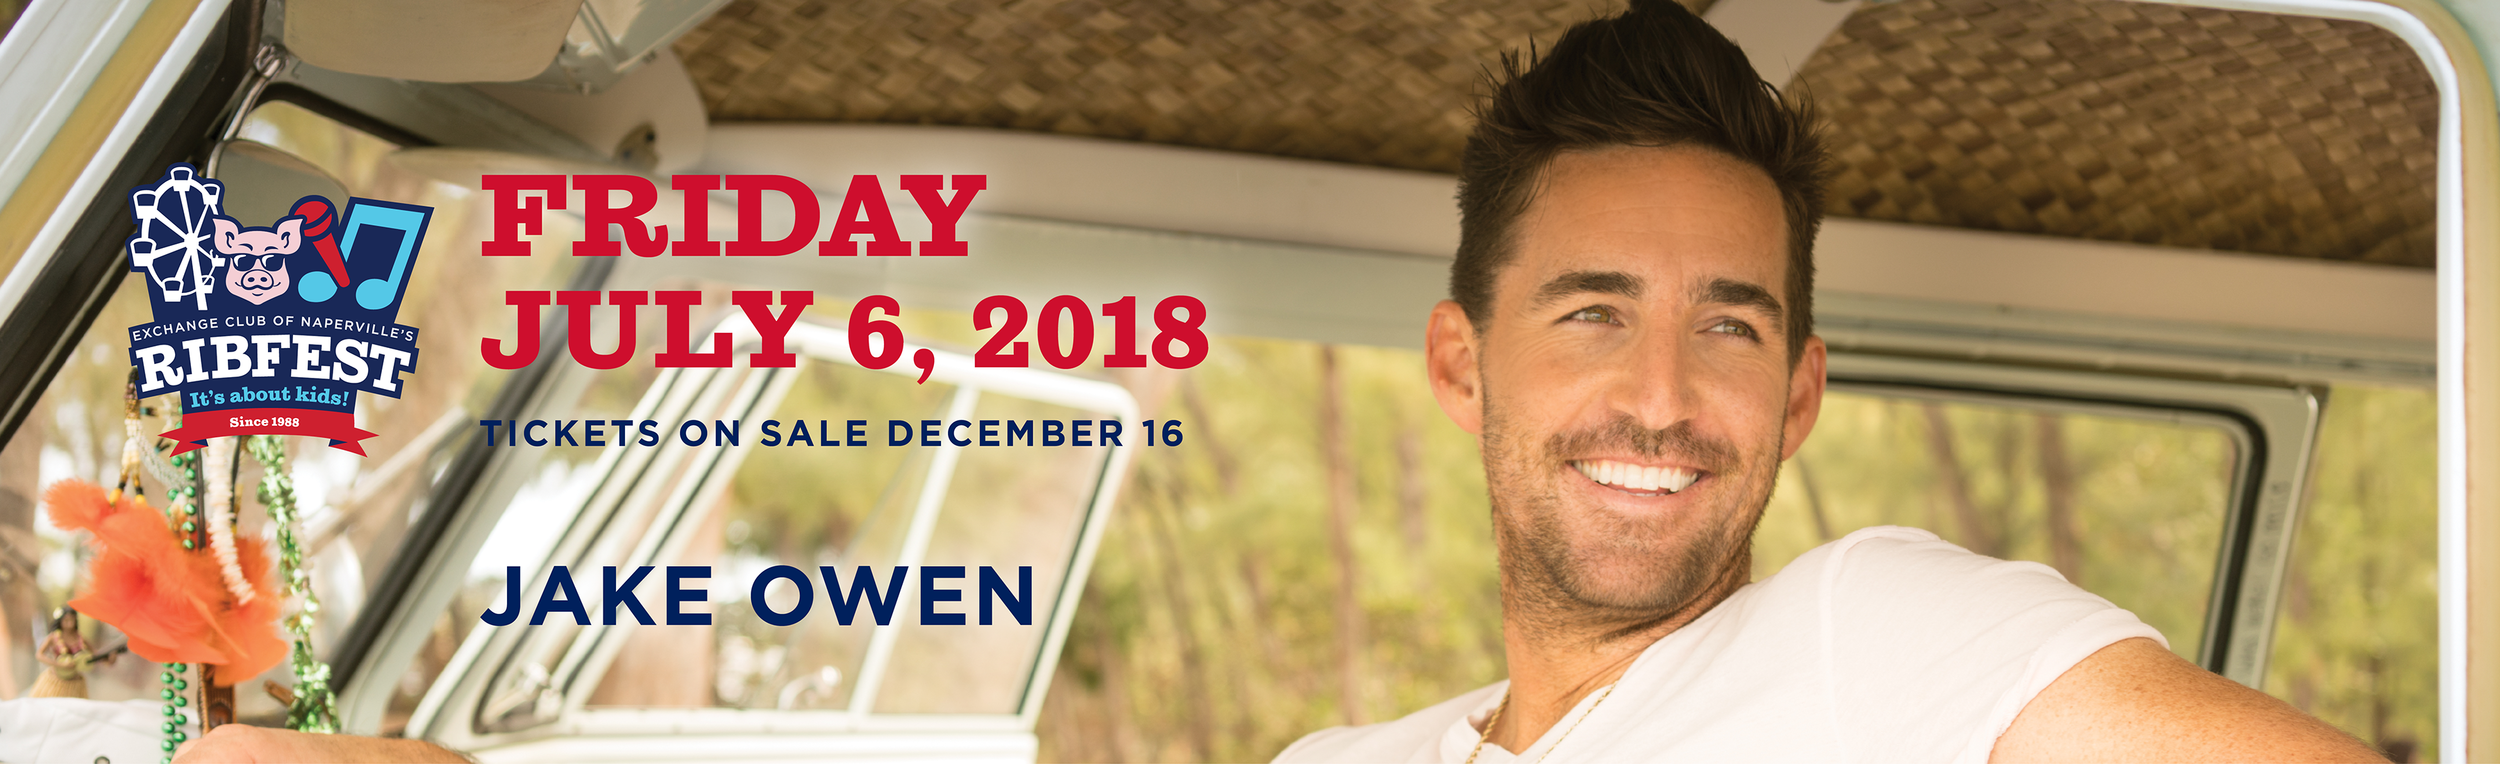 Jake Owen List Of Songs Simple ribfest 2018 presents jake owen and chris janson at knoch park in